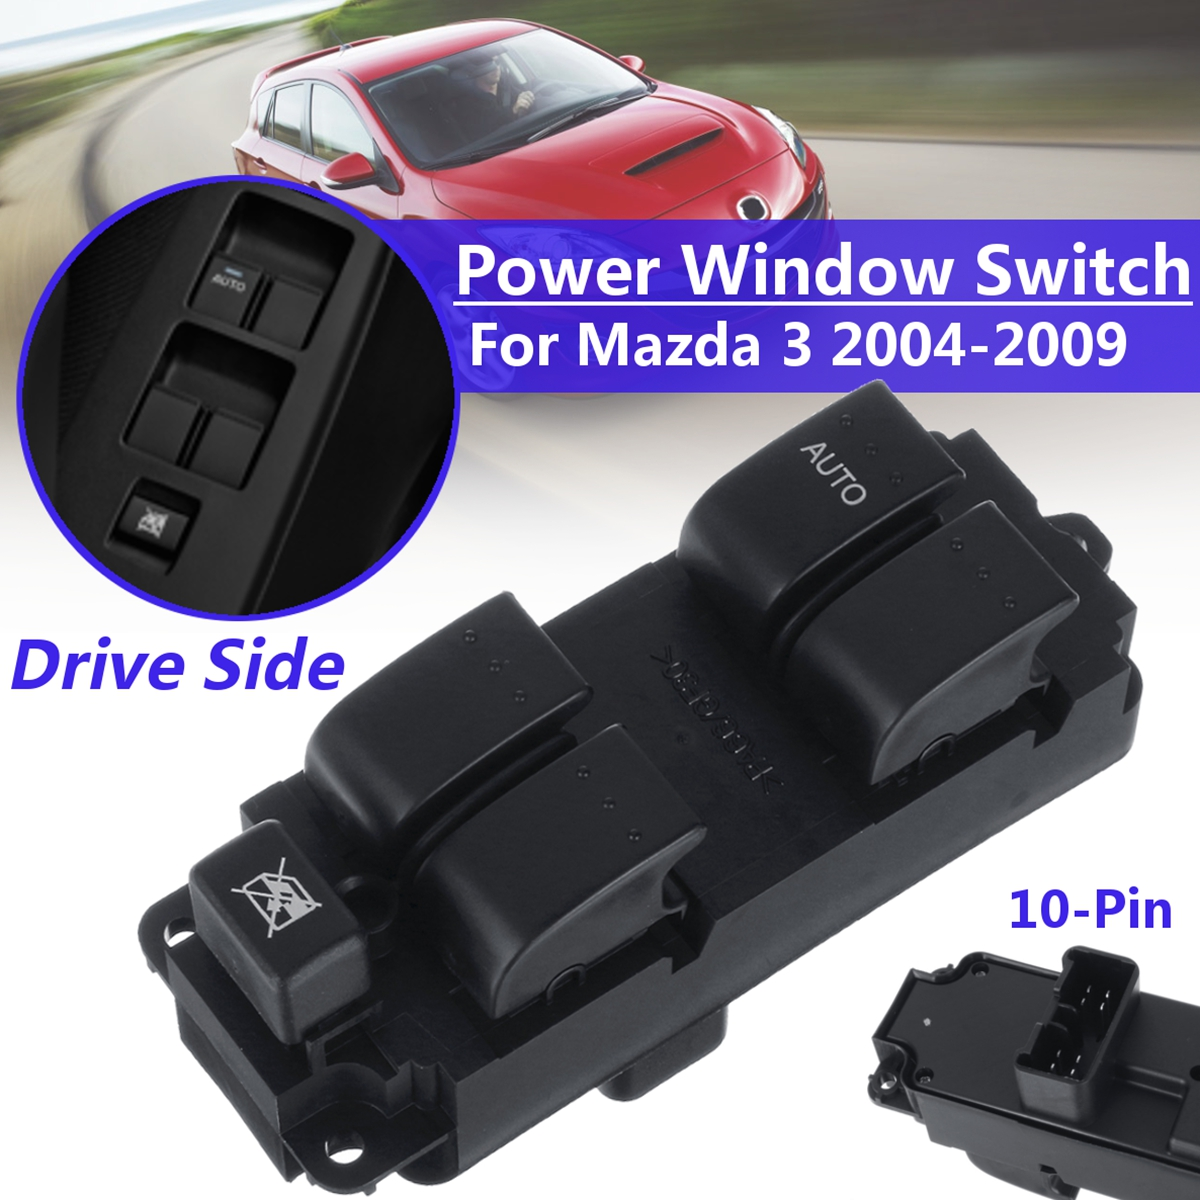 Electric Power Window Switch Drive Side Front Left ABS For Mazda 3 2004-2009 US #BN8F-66-350A